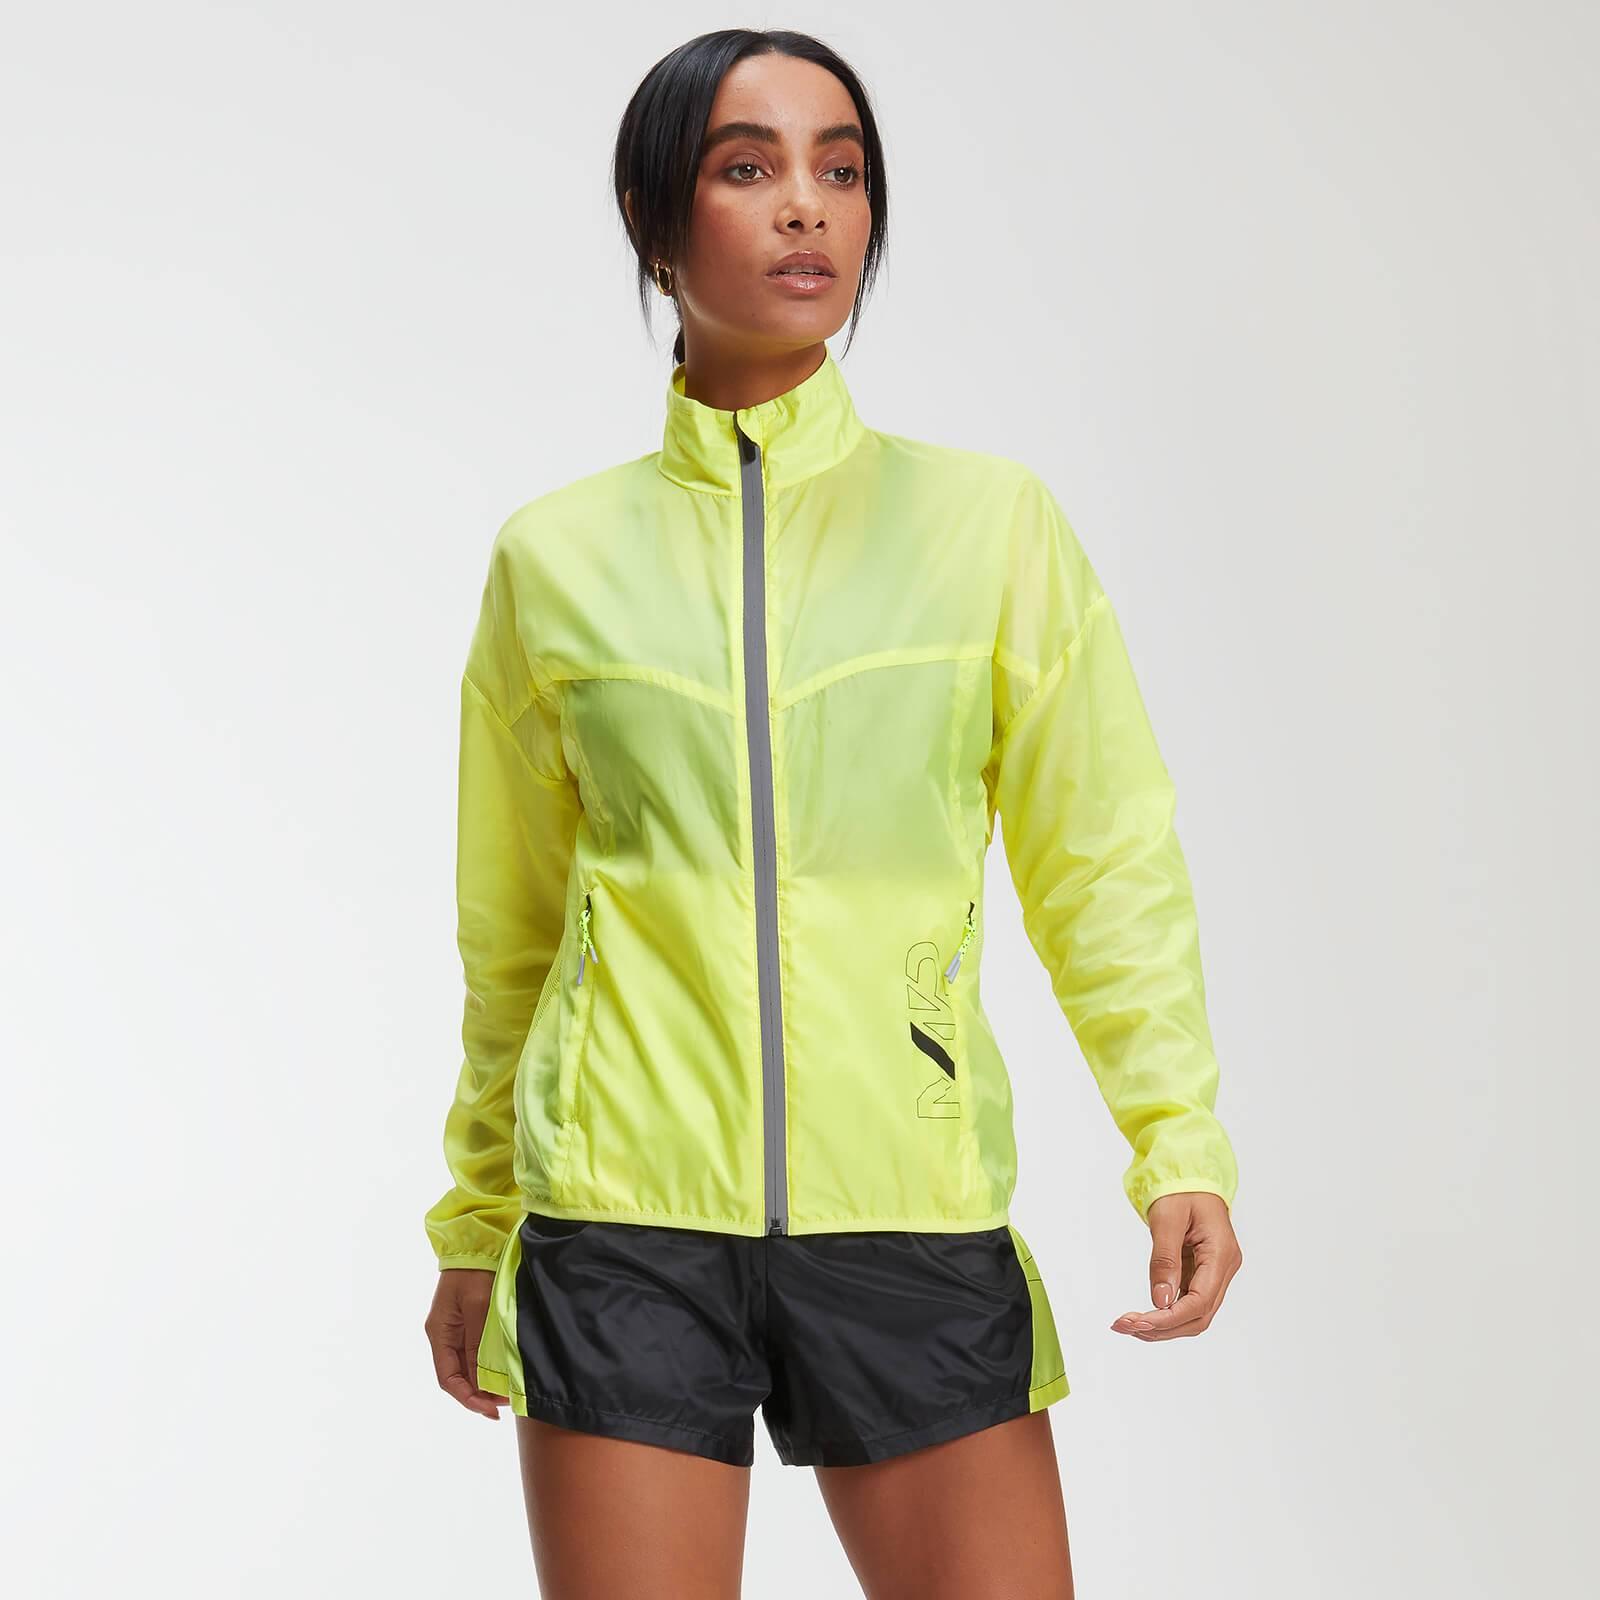 Myprotein MP Training Women's Reflective Windbreaker - Limeade - XL